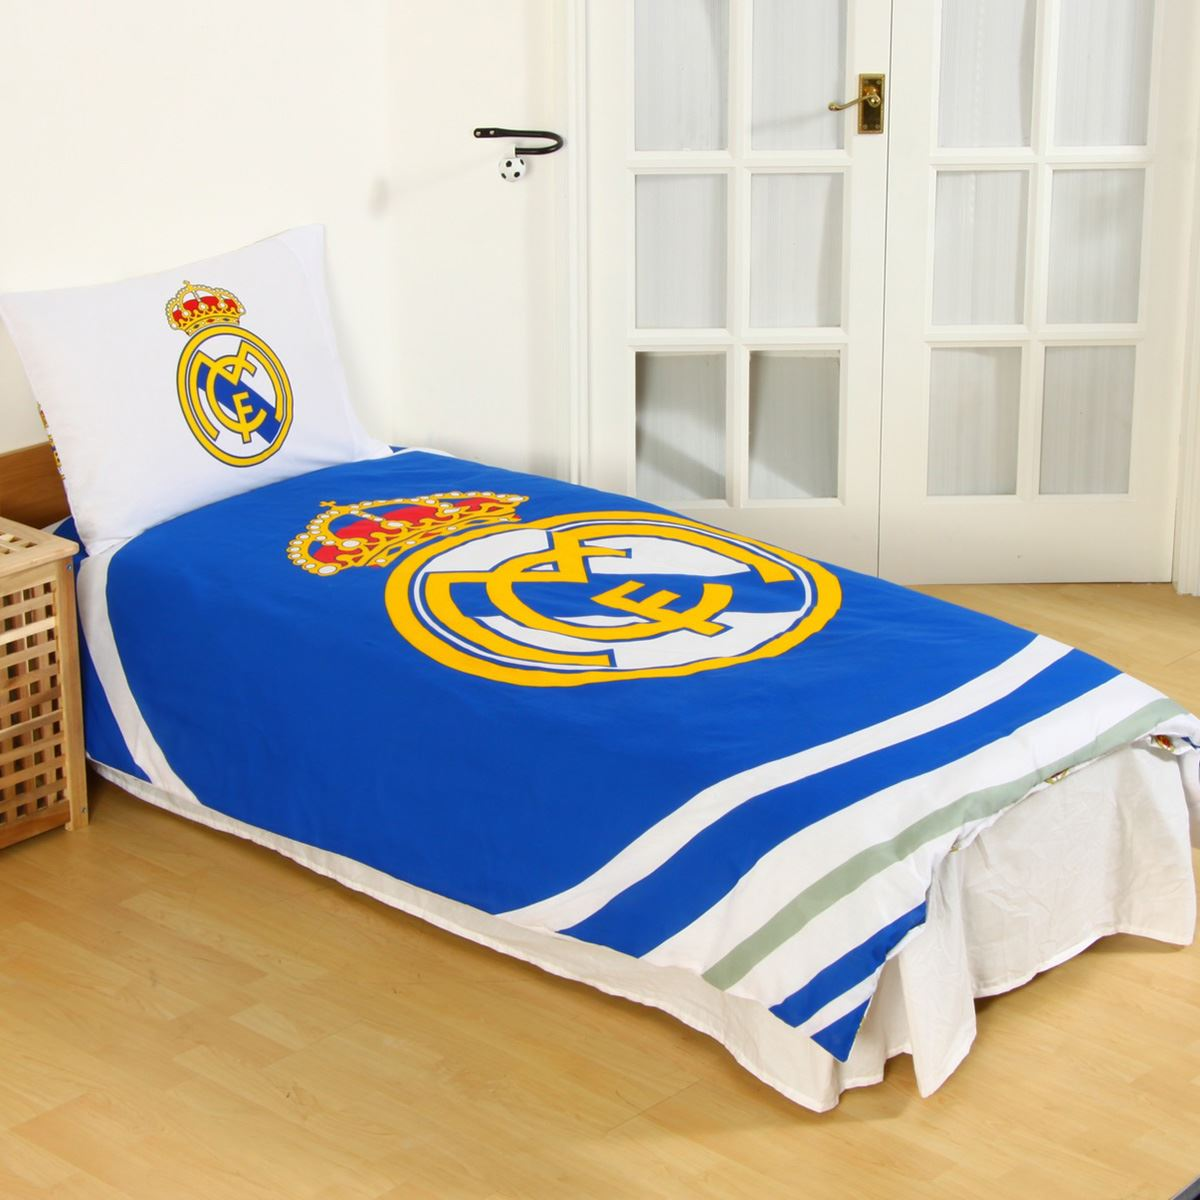 Real Madrid Bedding Accessories Football Duvet Covers